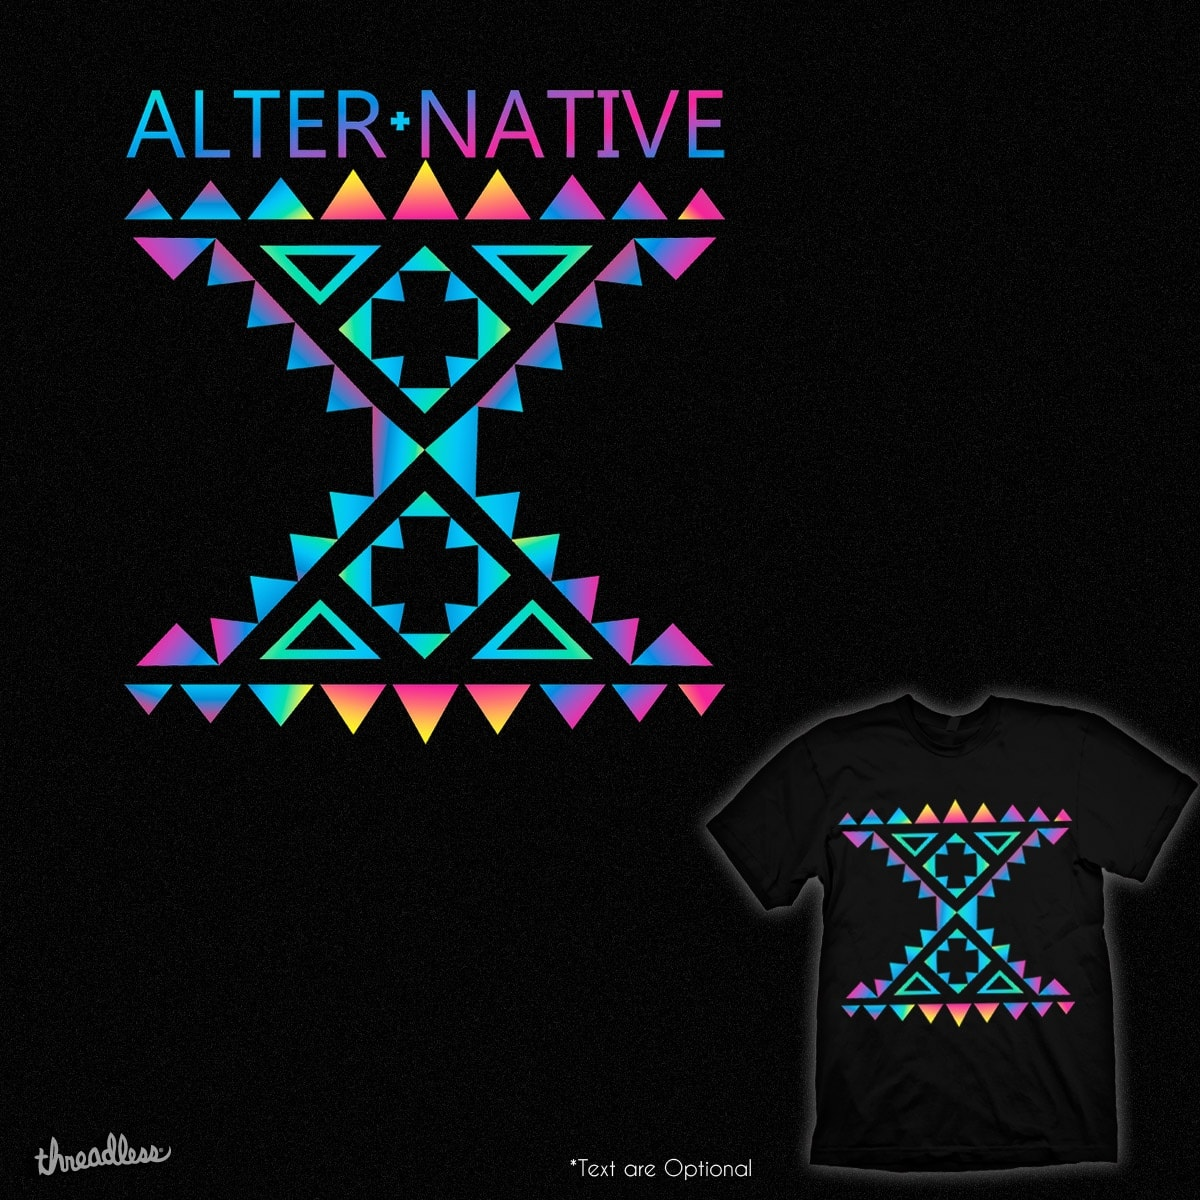 AlterNative by kuli_grafis on Threadless